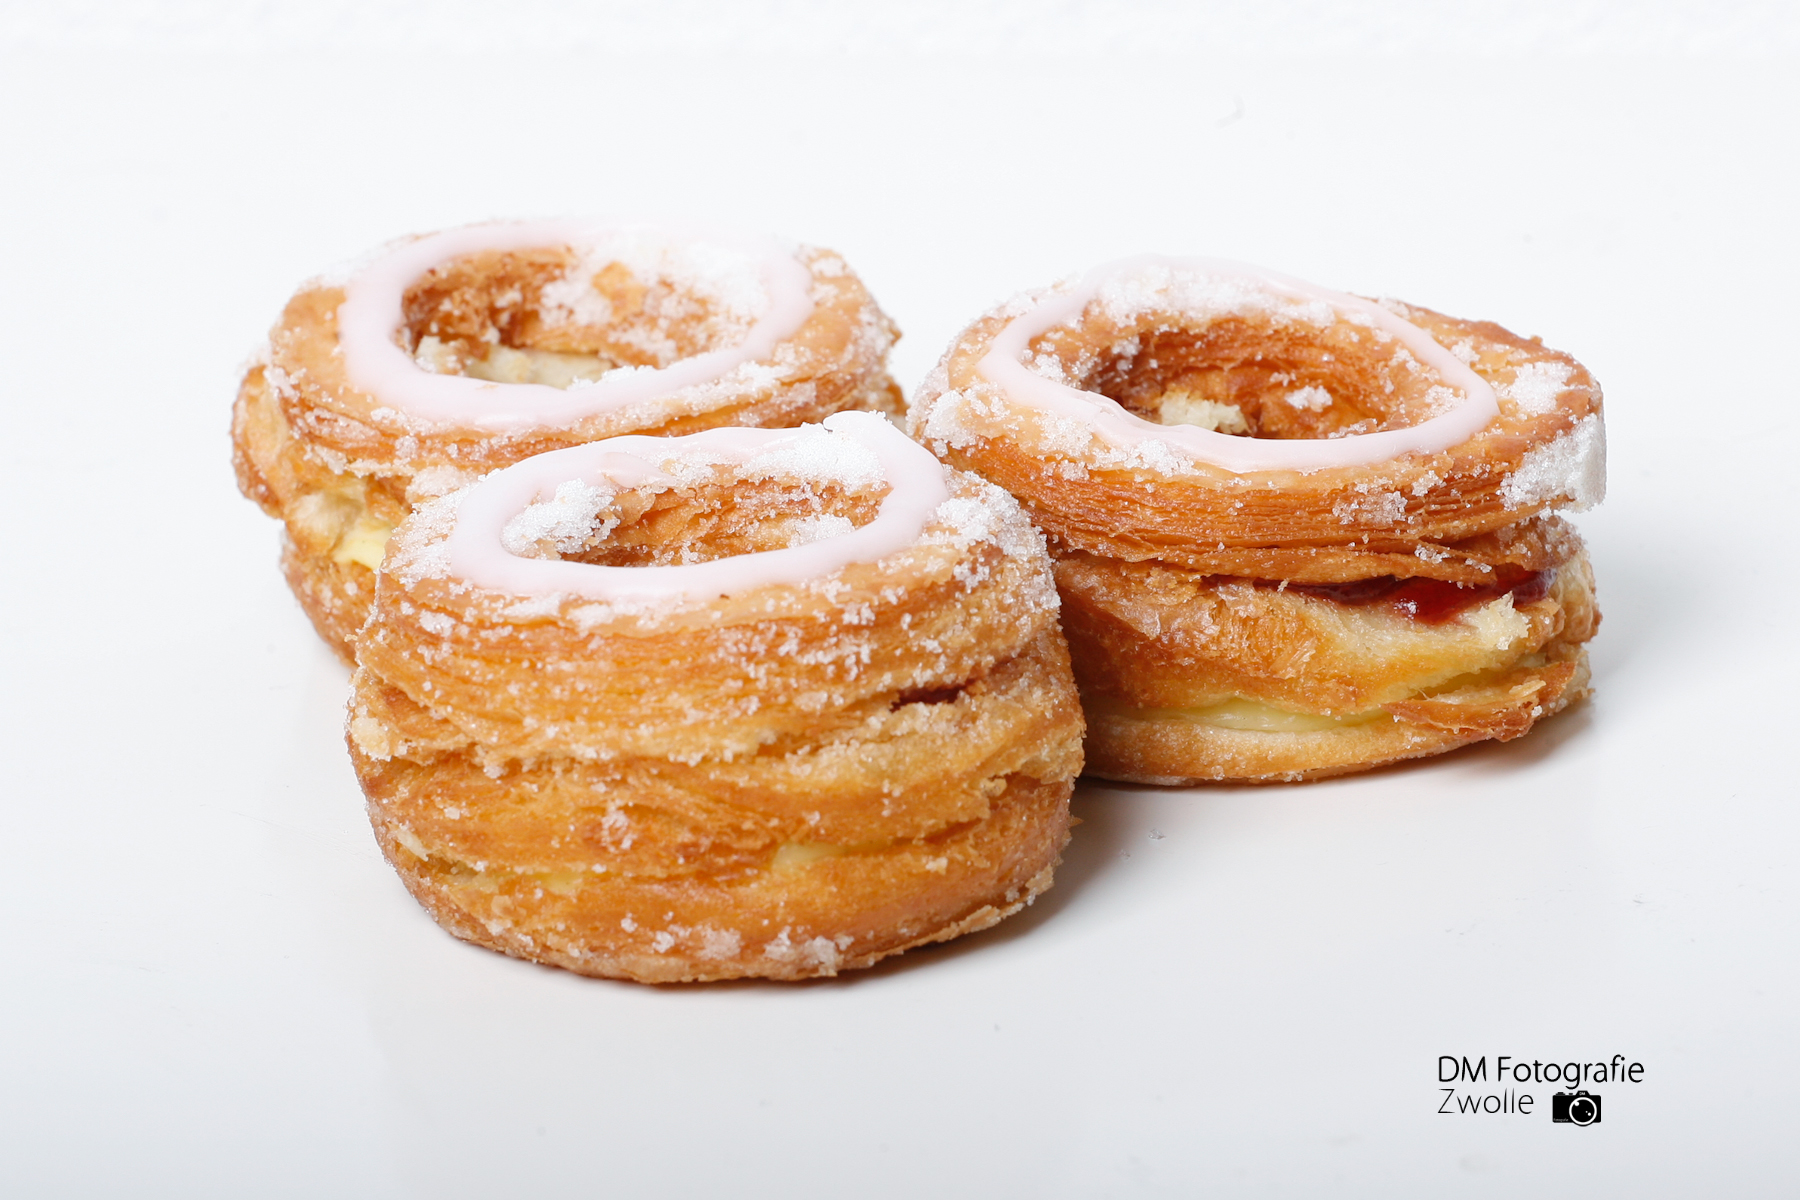 crazy about the cronut